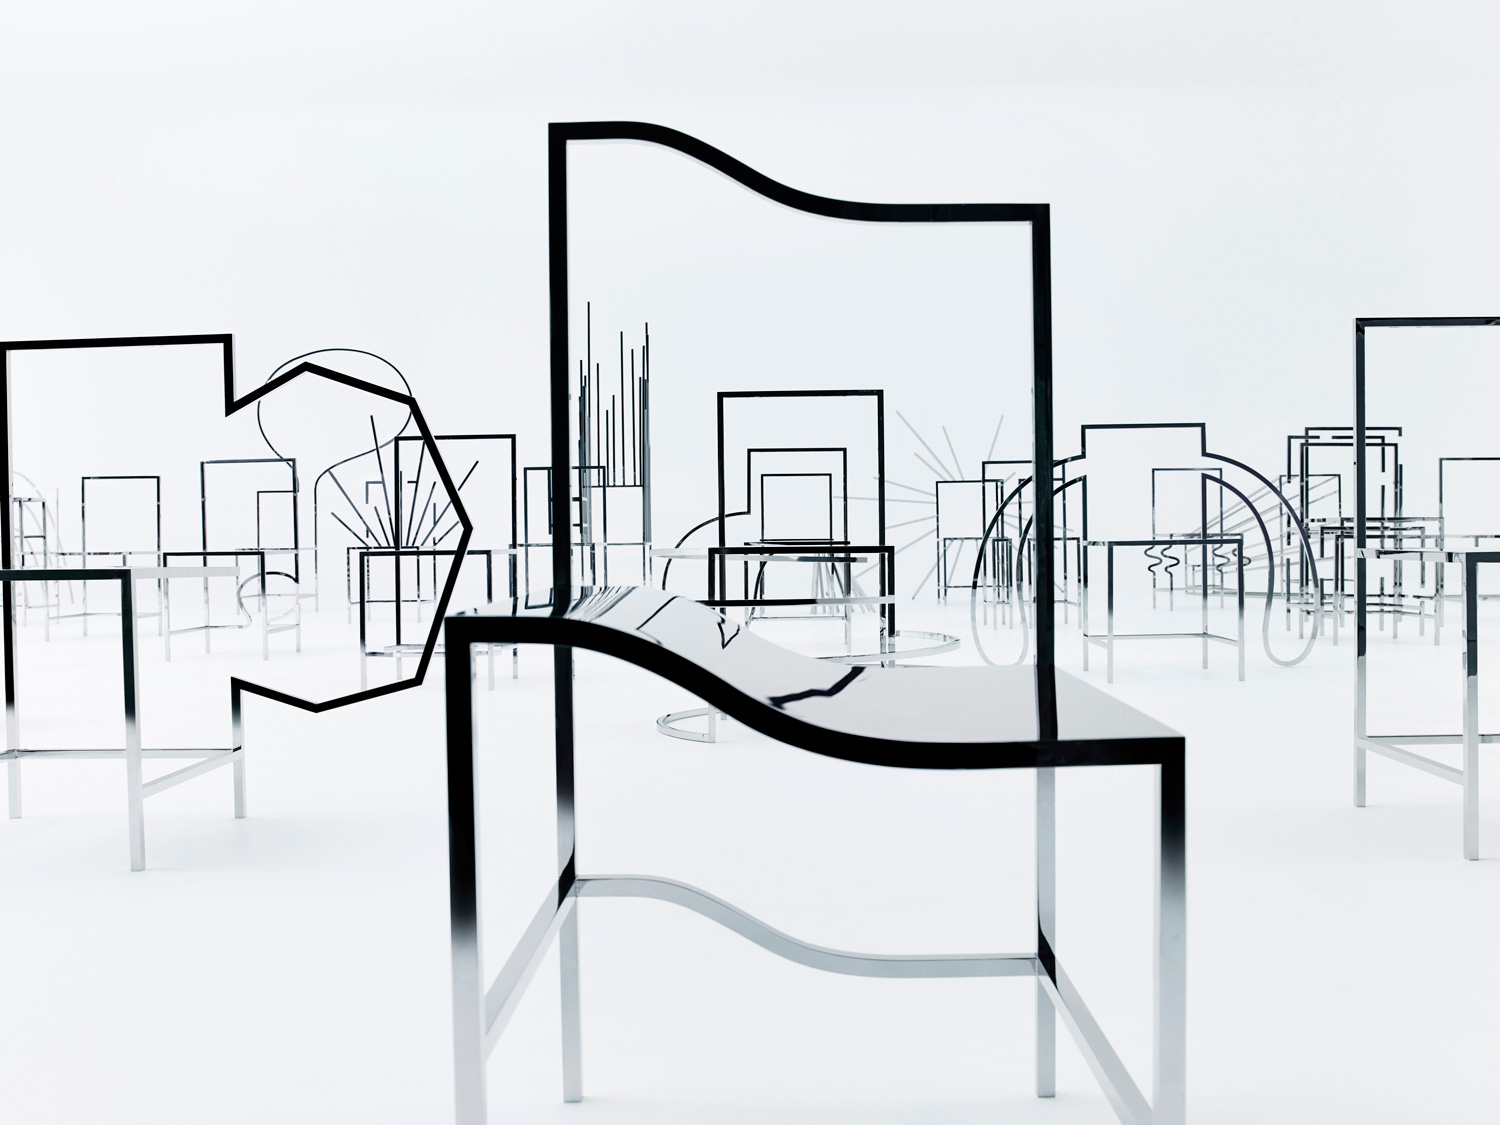 New York Gallery Friedman Benda And Japanese Studio Nendo Presented 50  Manga Chairs, The Installation Of Stainless Steel Chairs Which Made Its  European ...